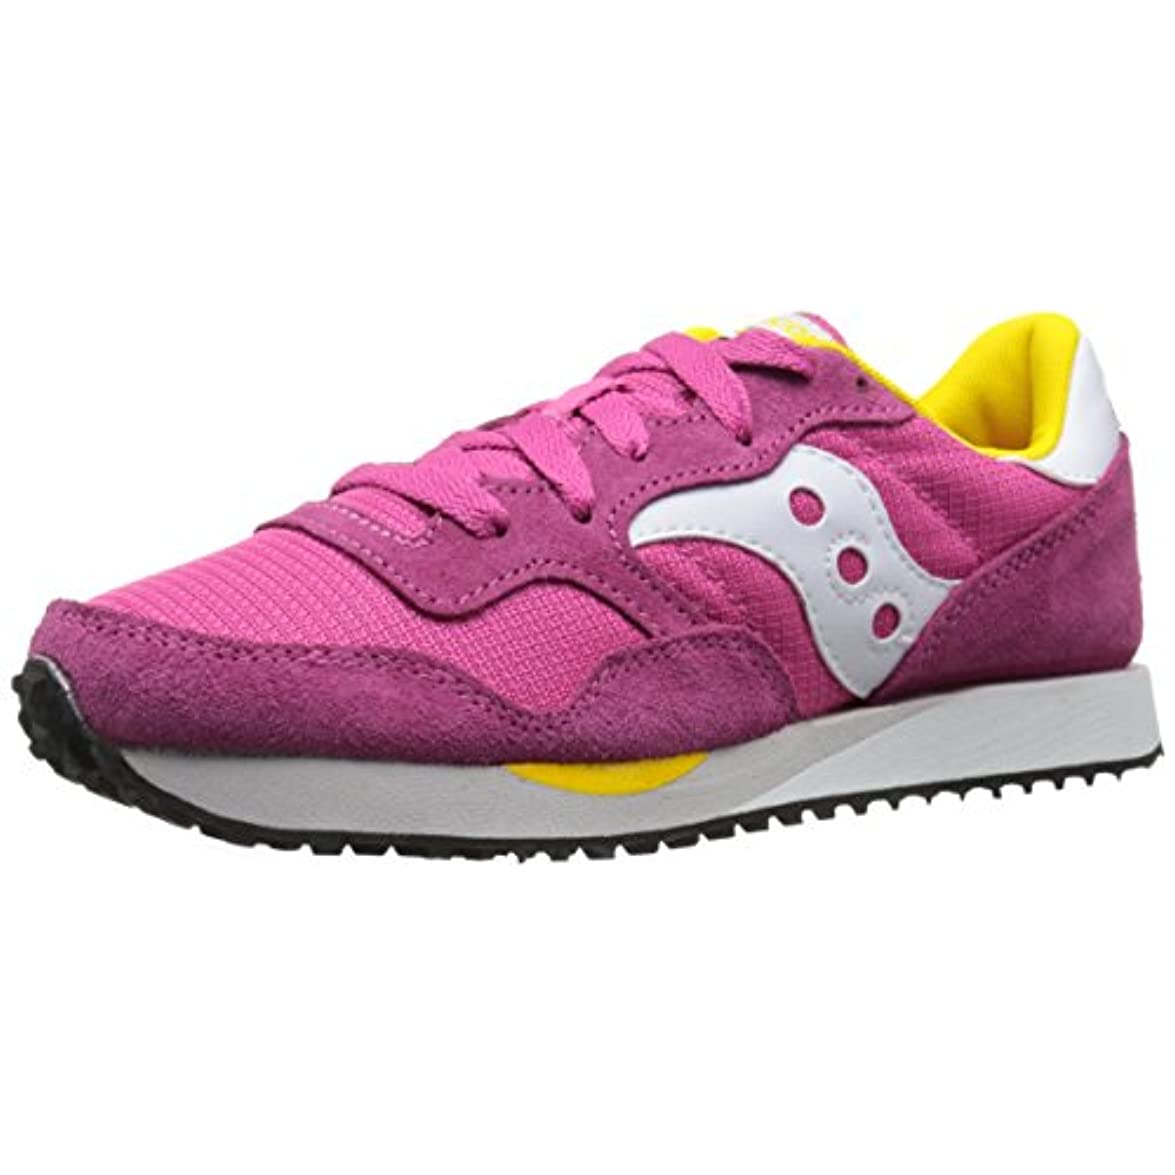 Saucony S60124 26 Dxn Trainer Fuxia Scarpe Donna Sneakers